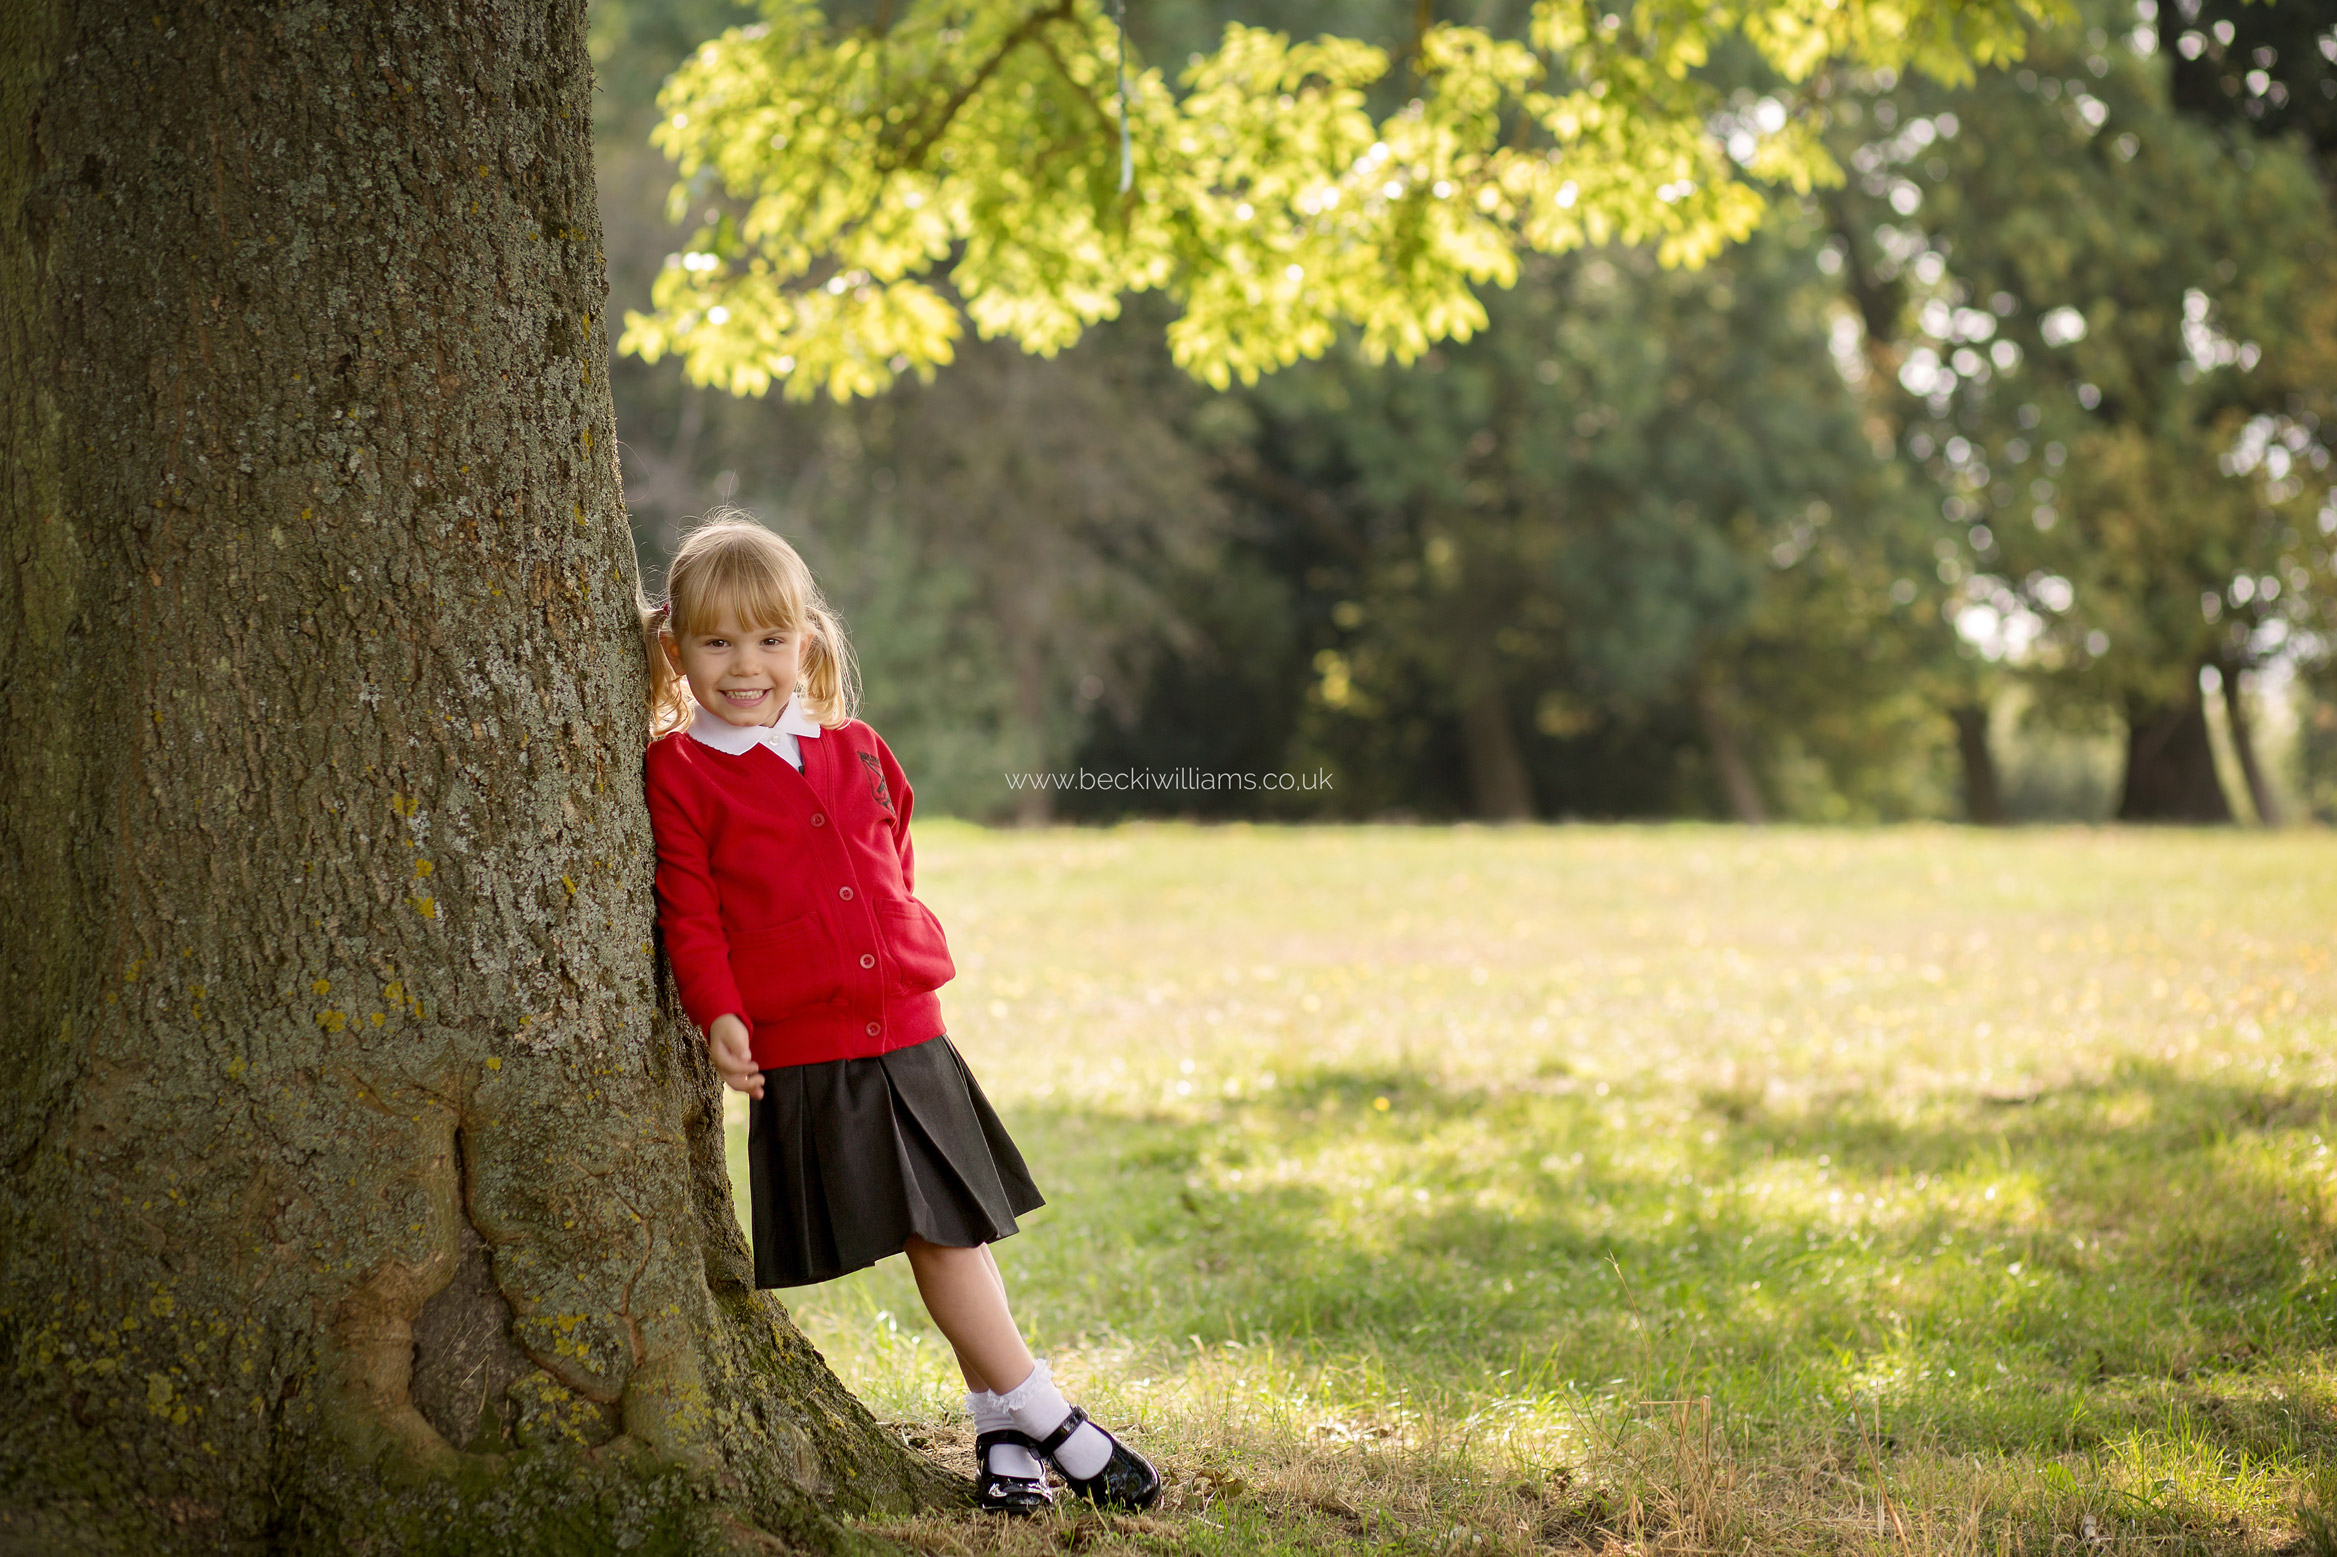 School girl standing under a tree for a Back To School photo shoot in Hertfordshire